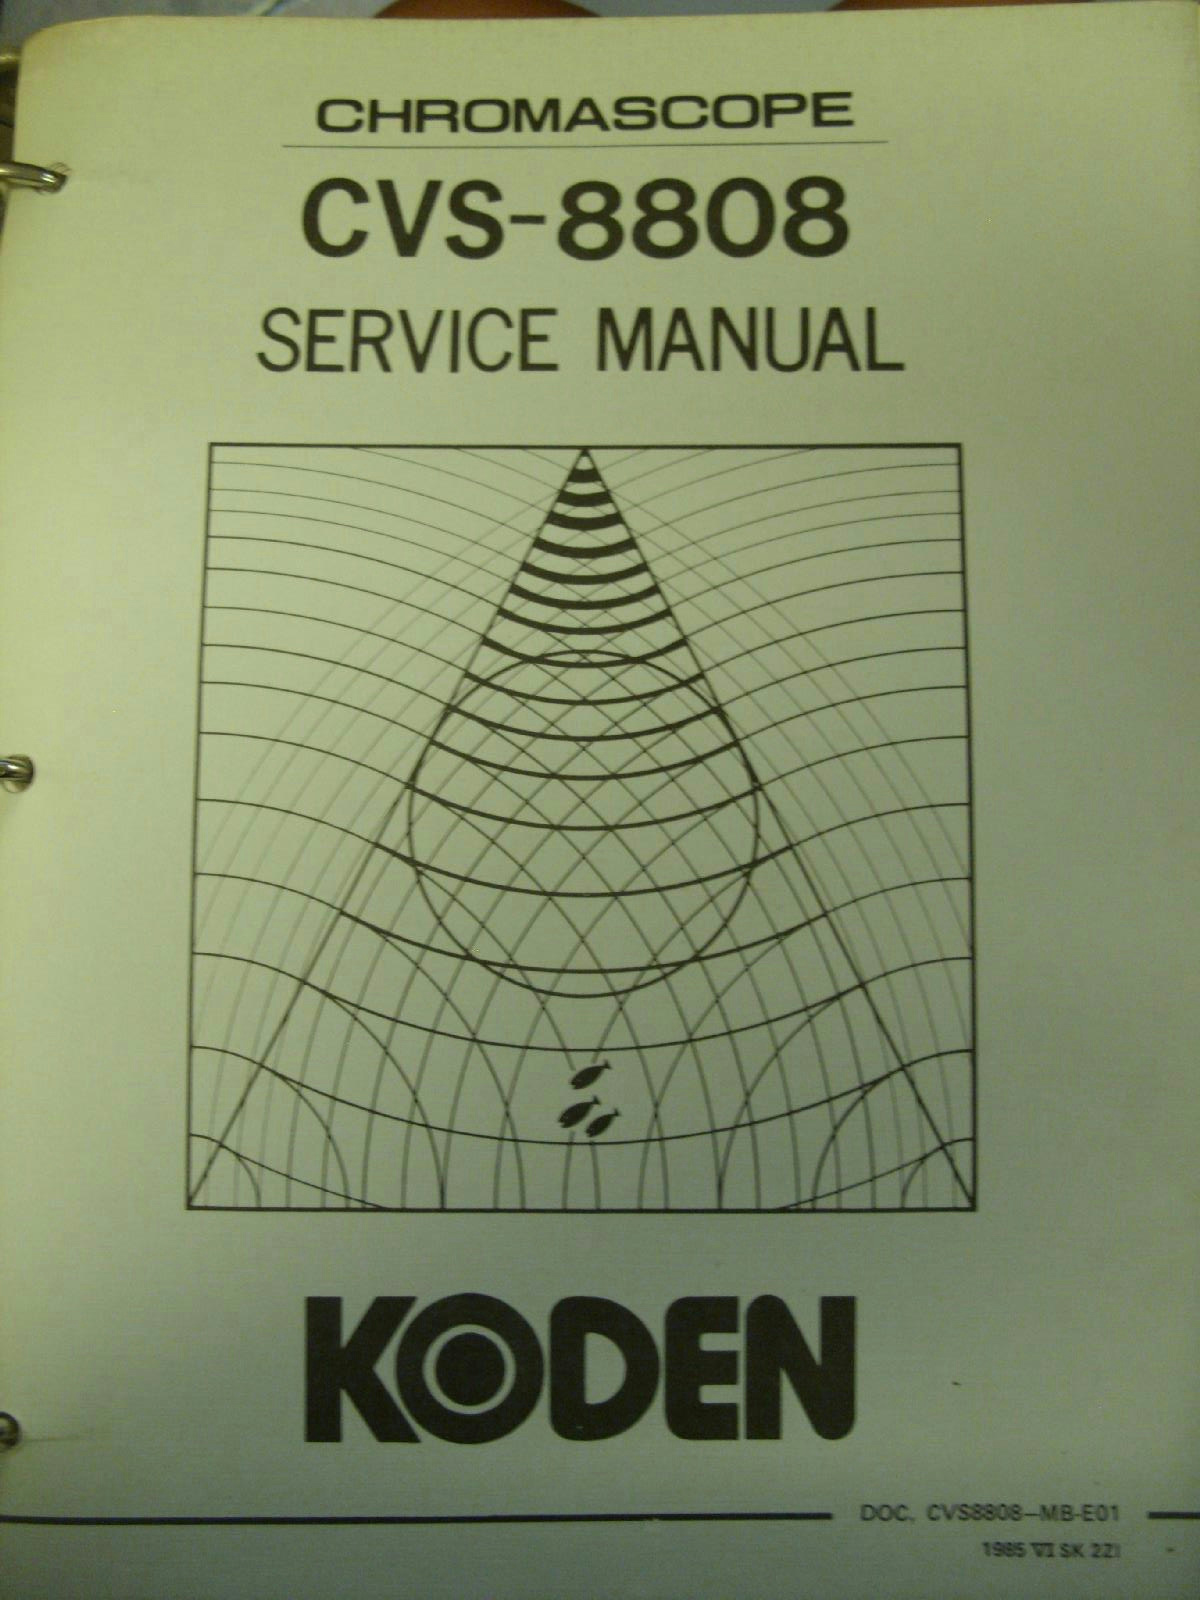 koden service manual hard cover cvs